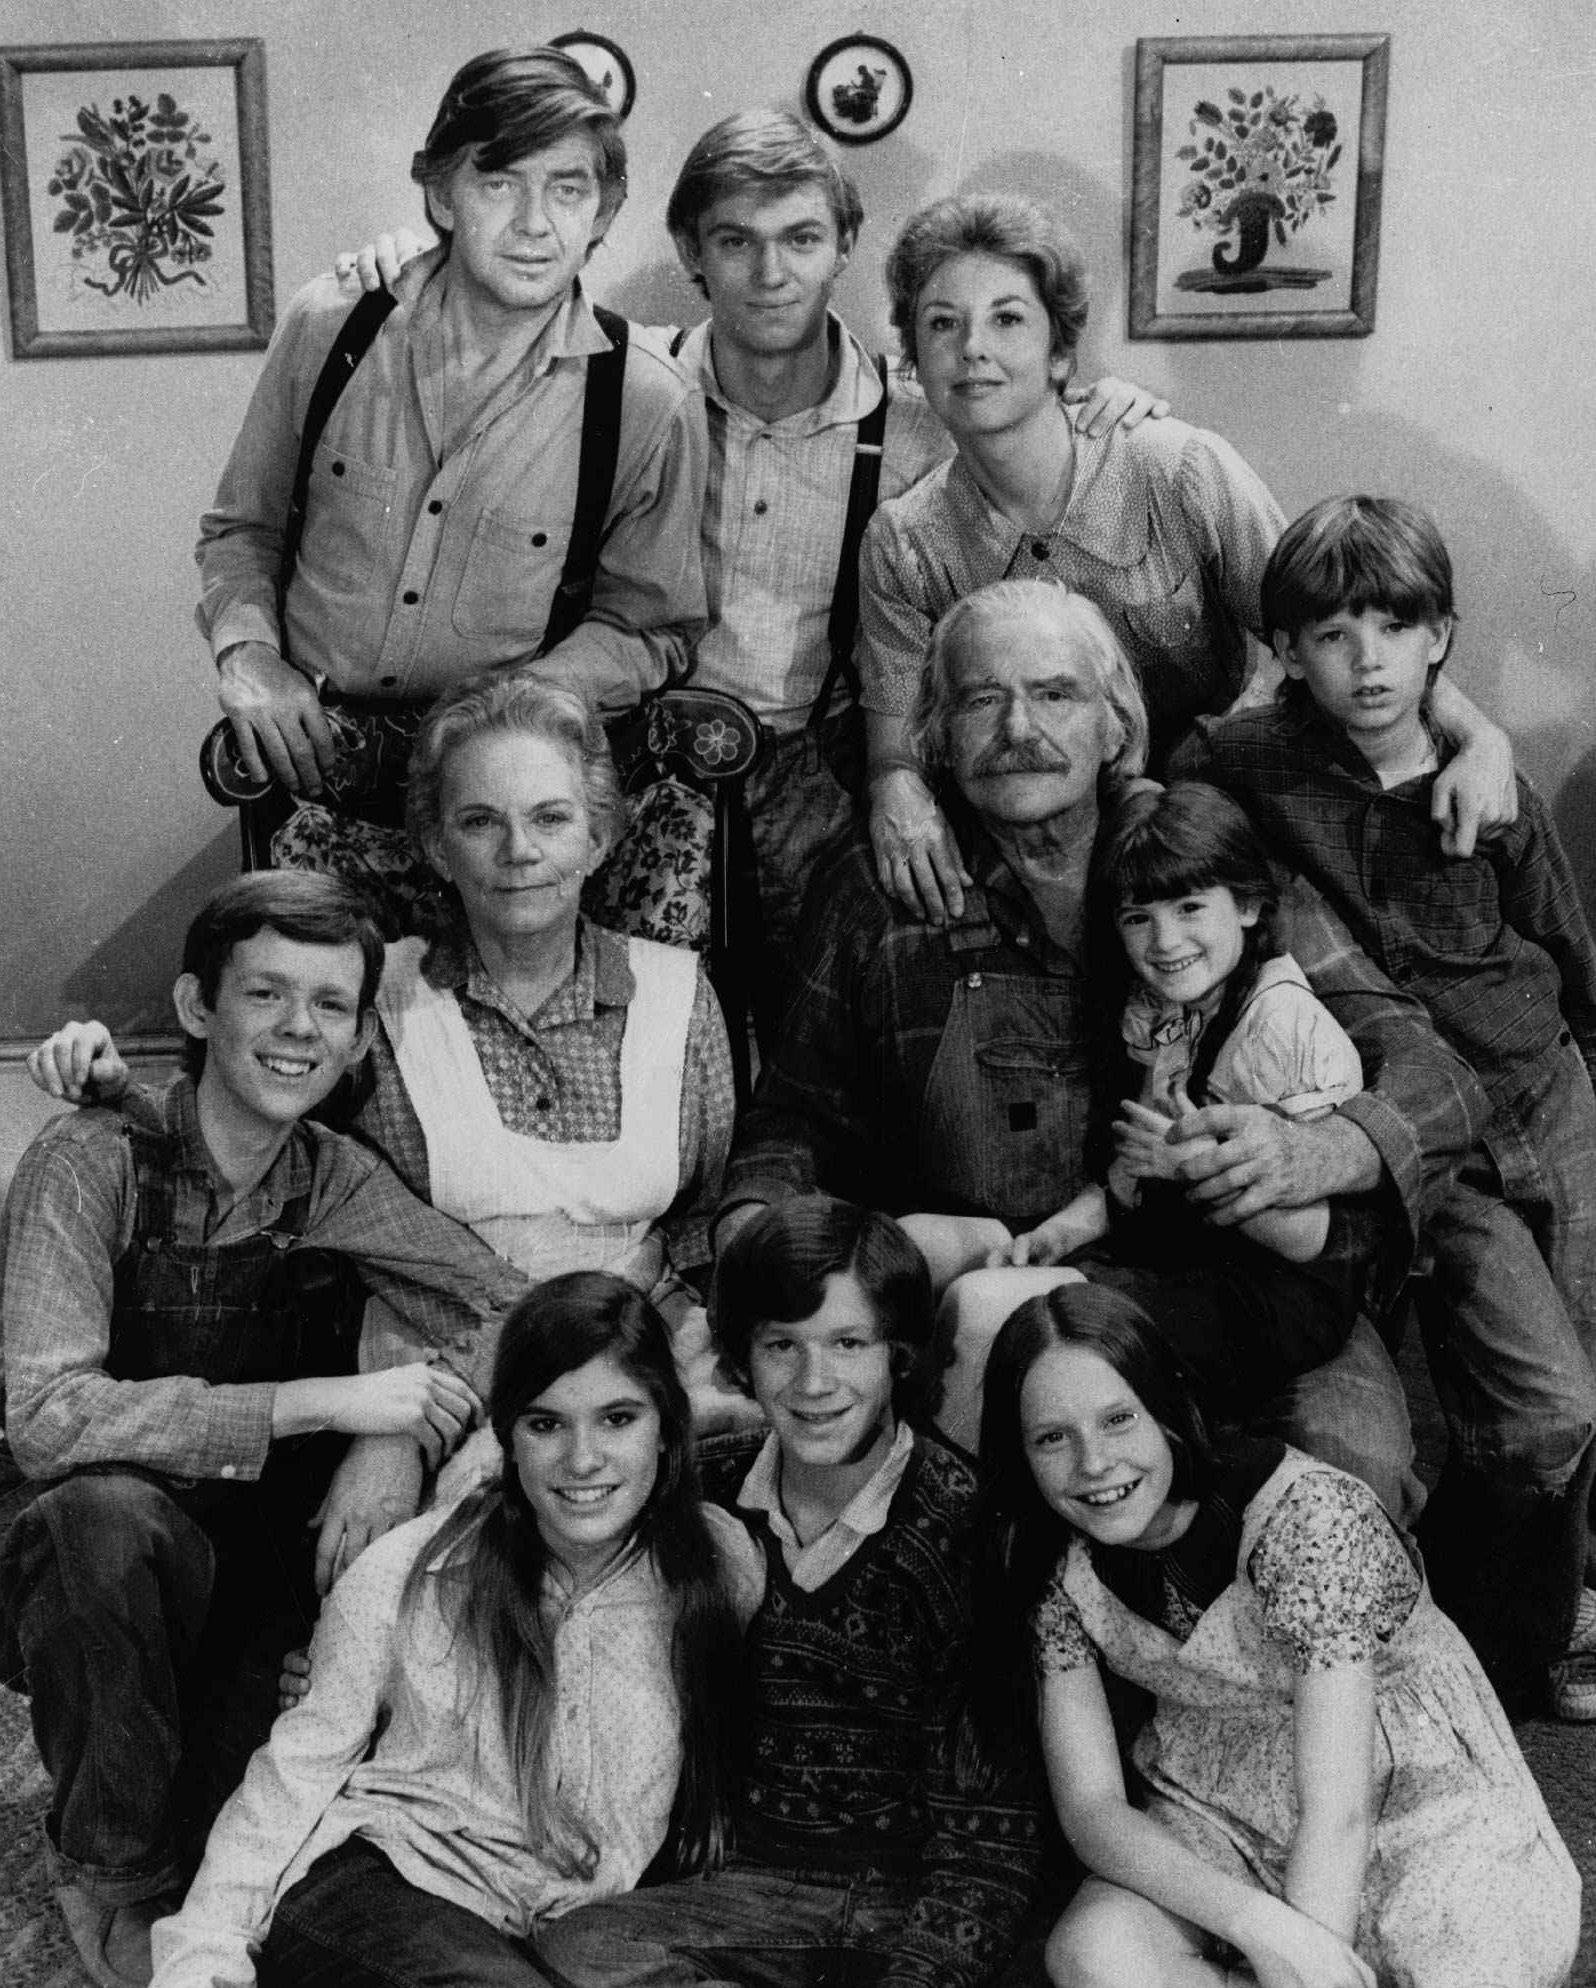 """The Waltons"" cast, including Ralph Waite, top row, left, Richard Thomas, top row, center, and Michael Learned, top row, right."